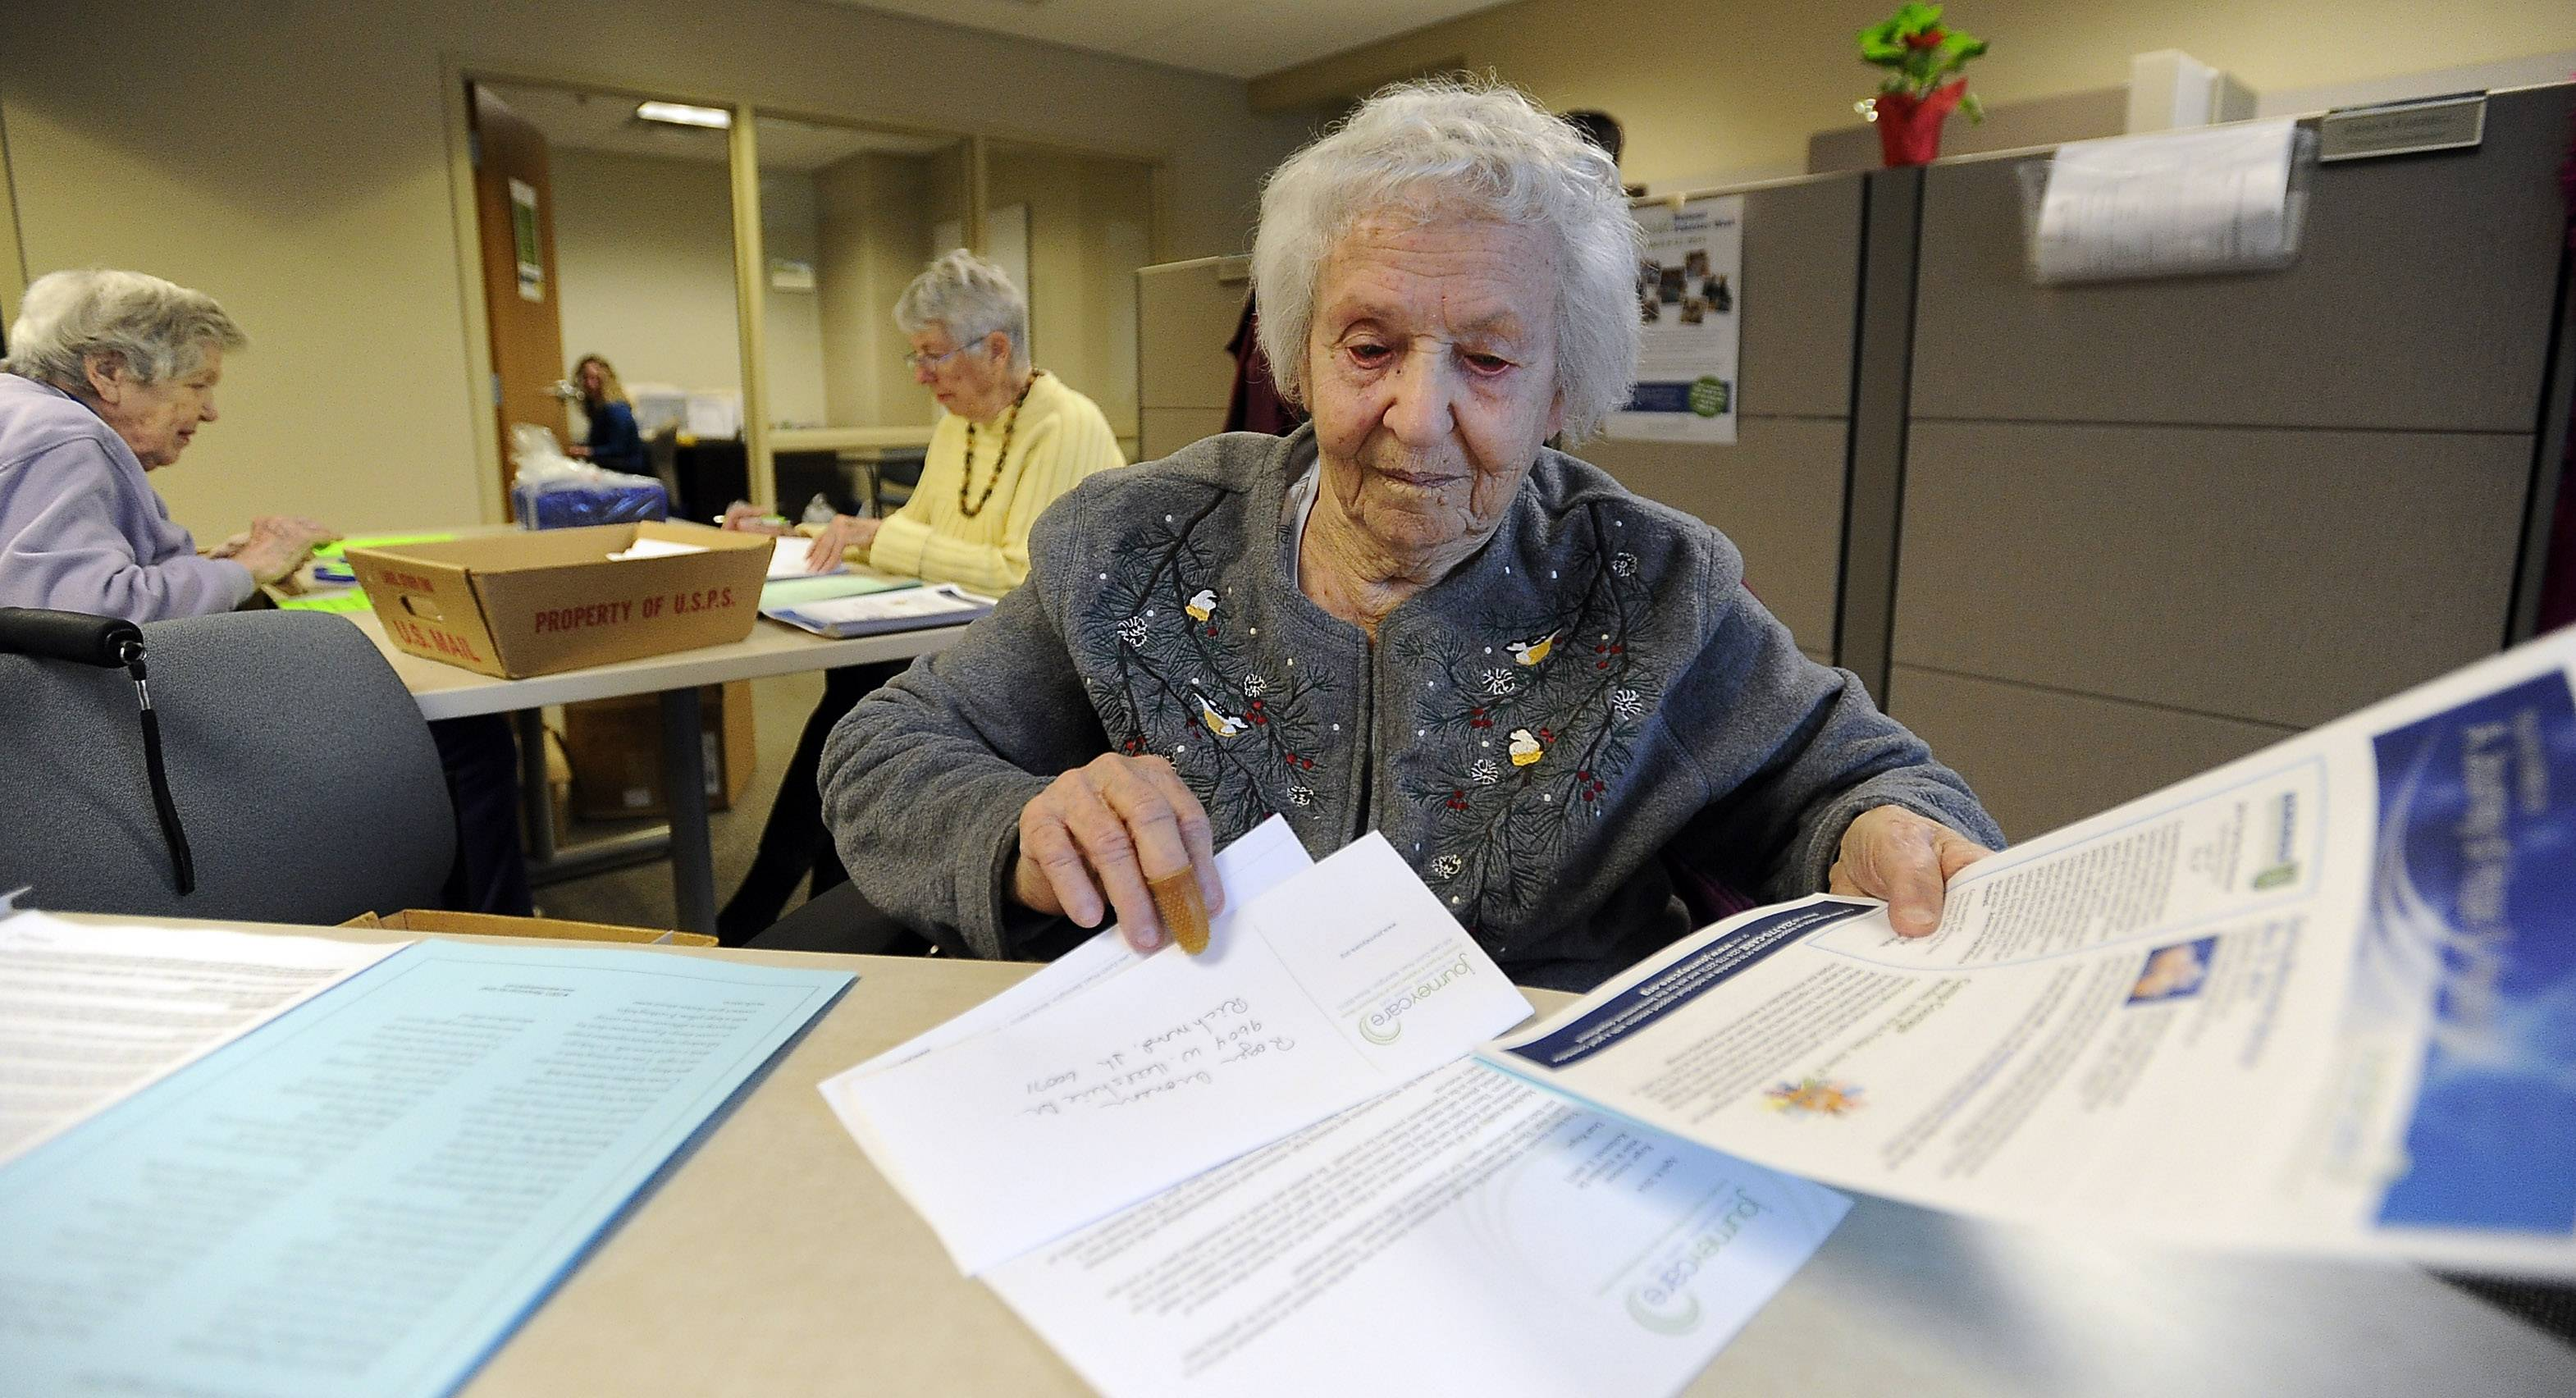 Marie Schaack, a 102-year old volunteer at JourneyCare in Barrington, loves to come to work every day.